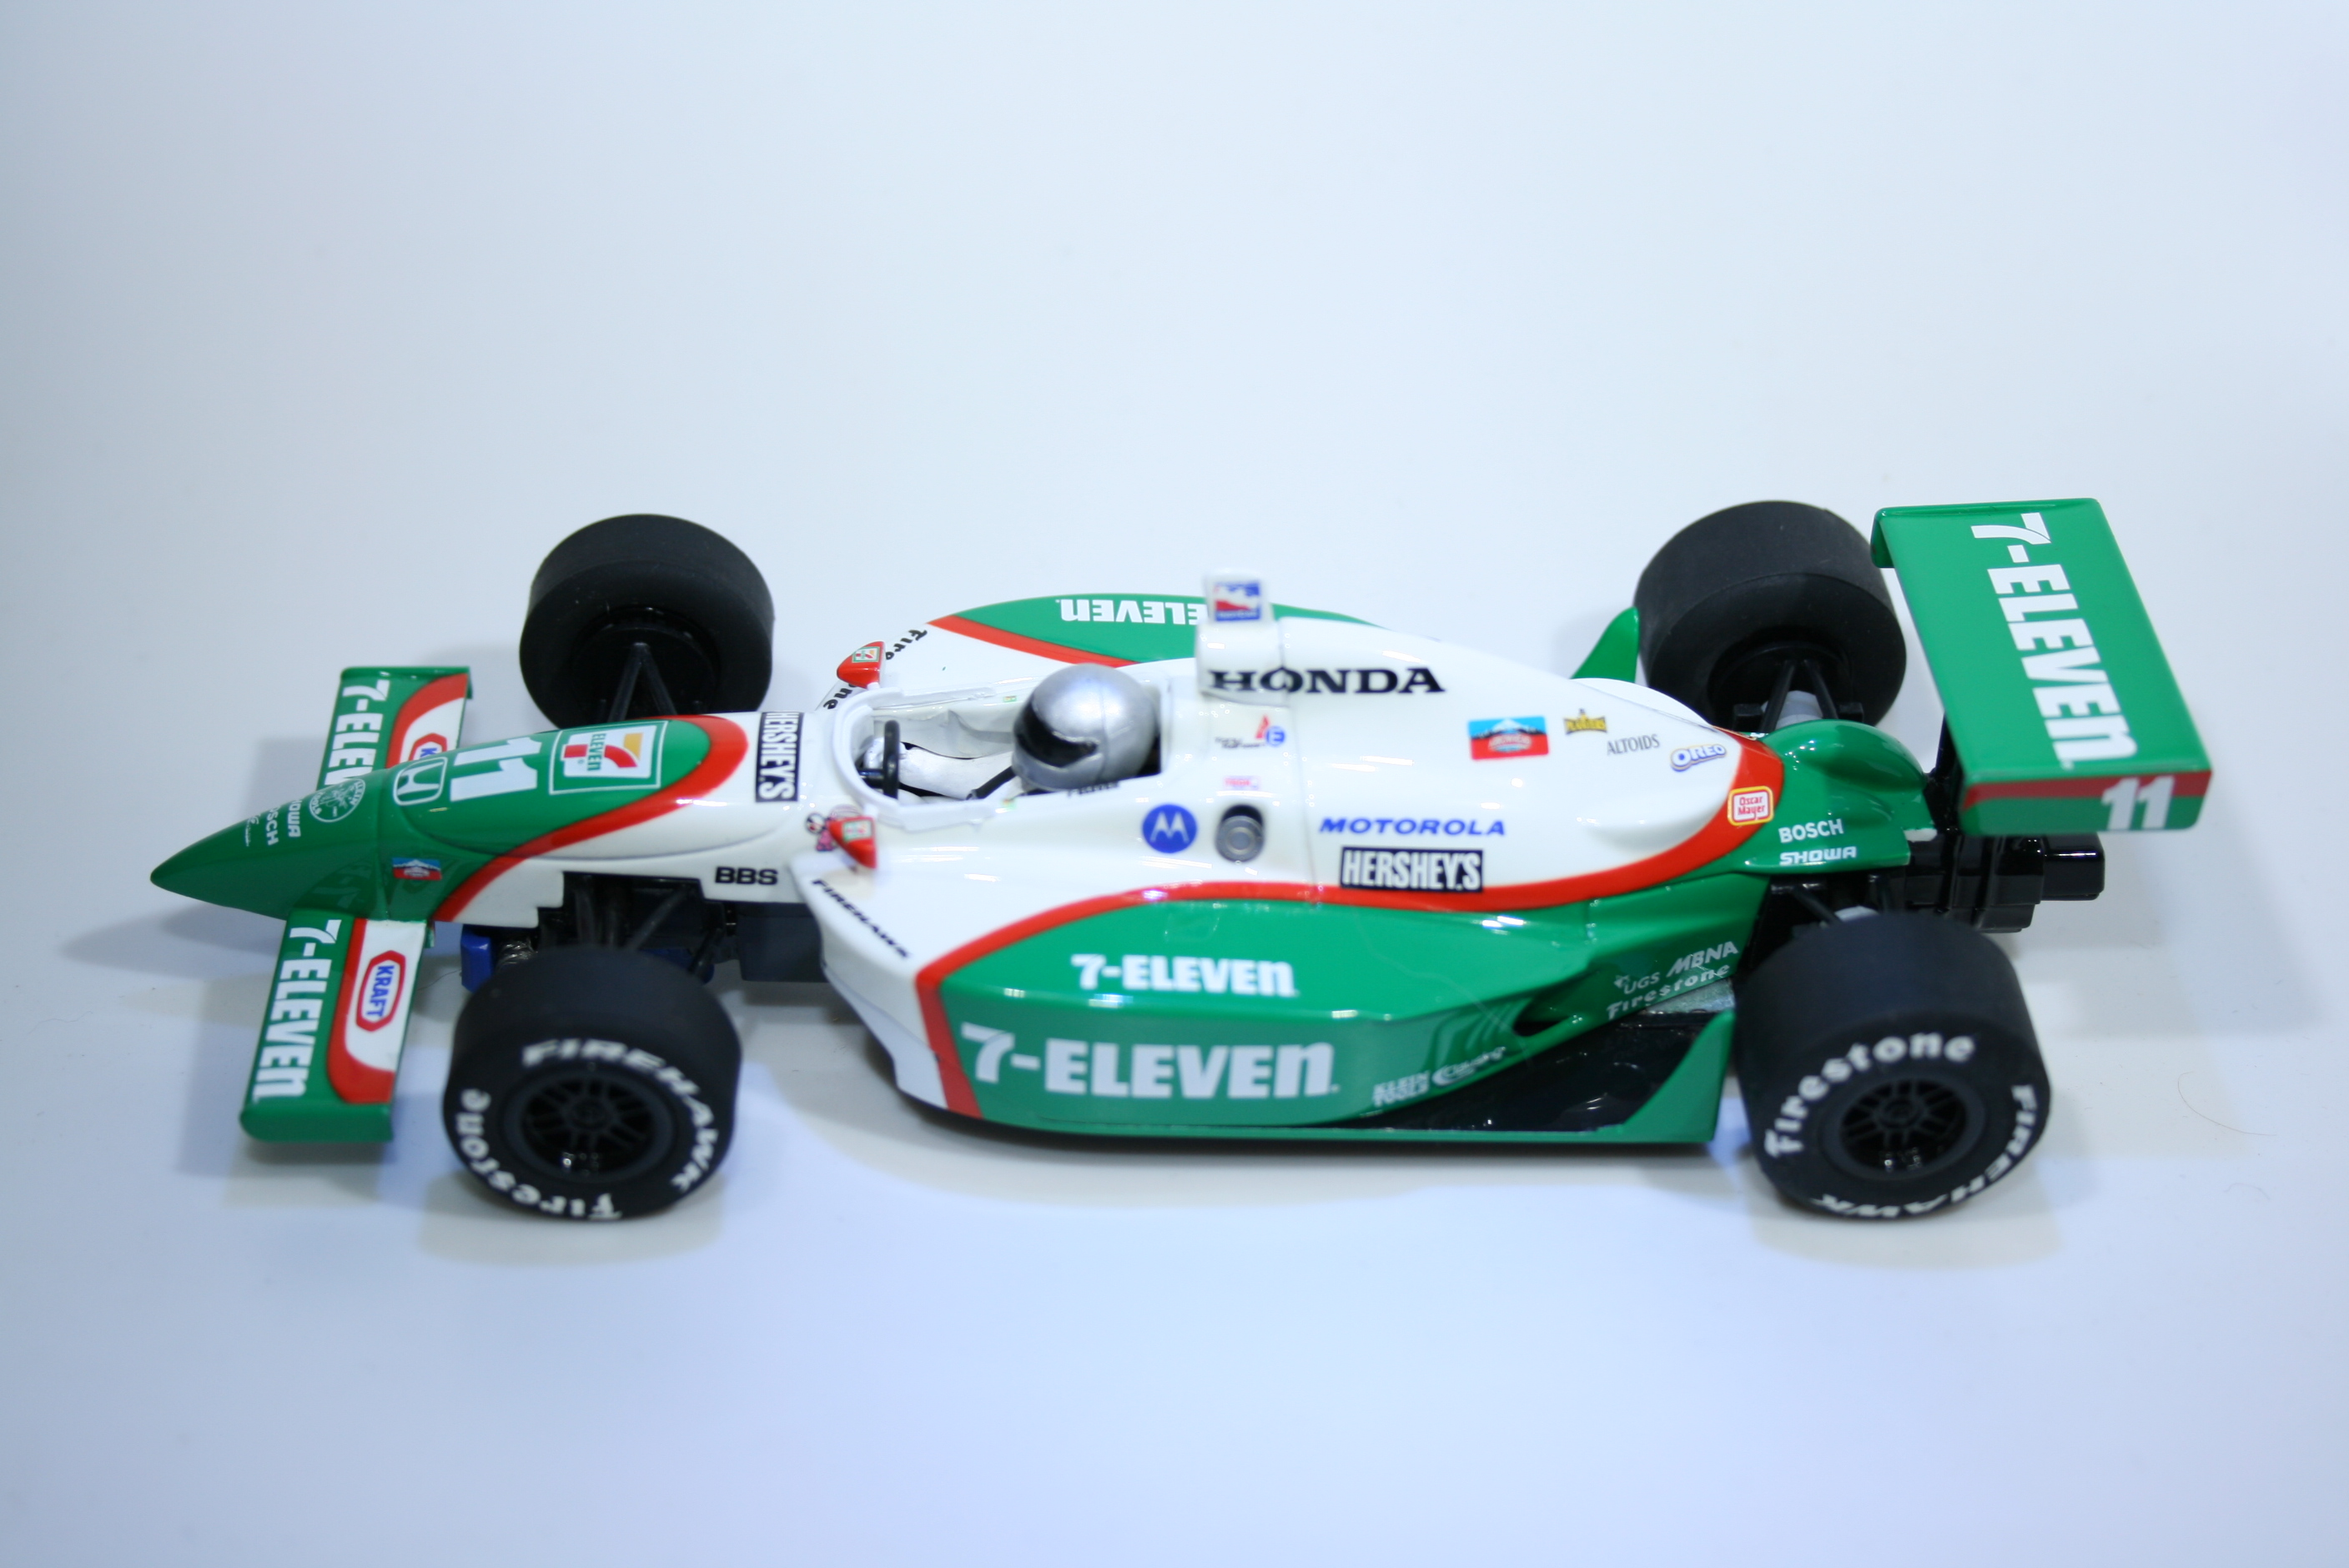 360 Dallara  Andretti Racing Green IR-05 T Kanaan 2006 Scalextric C2572 2006-07 Boxed